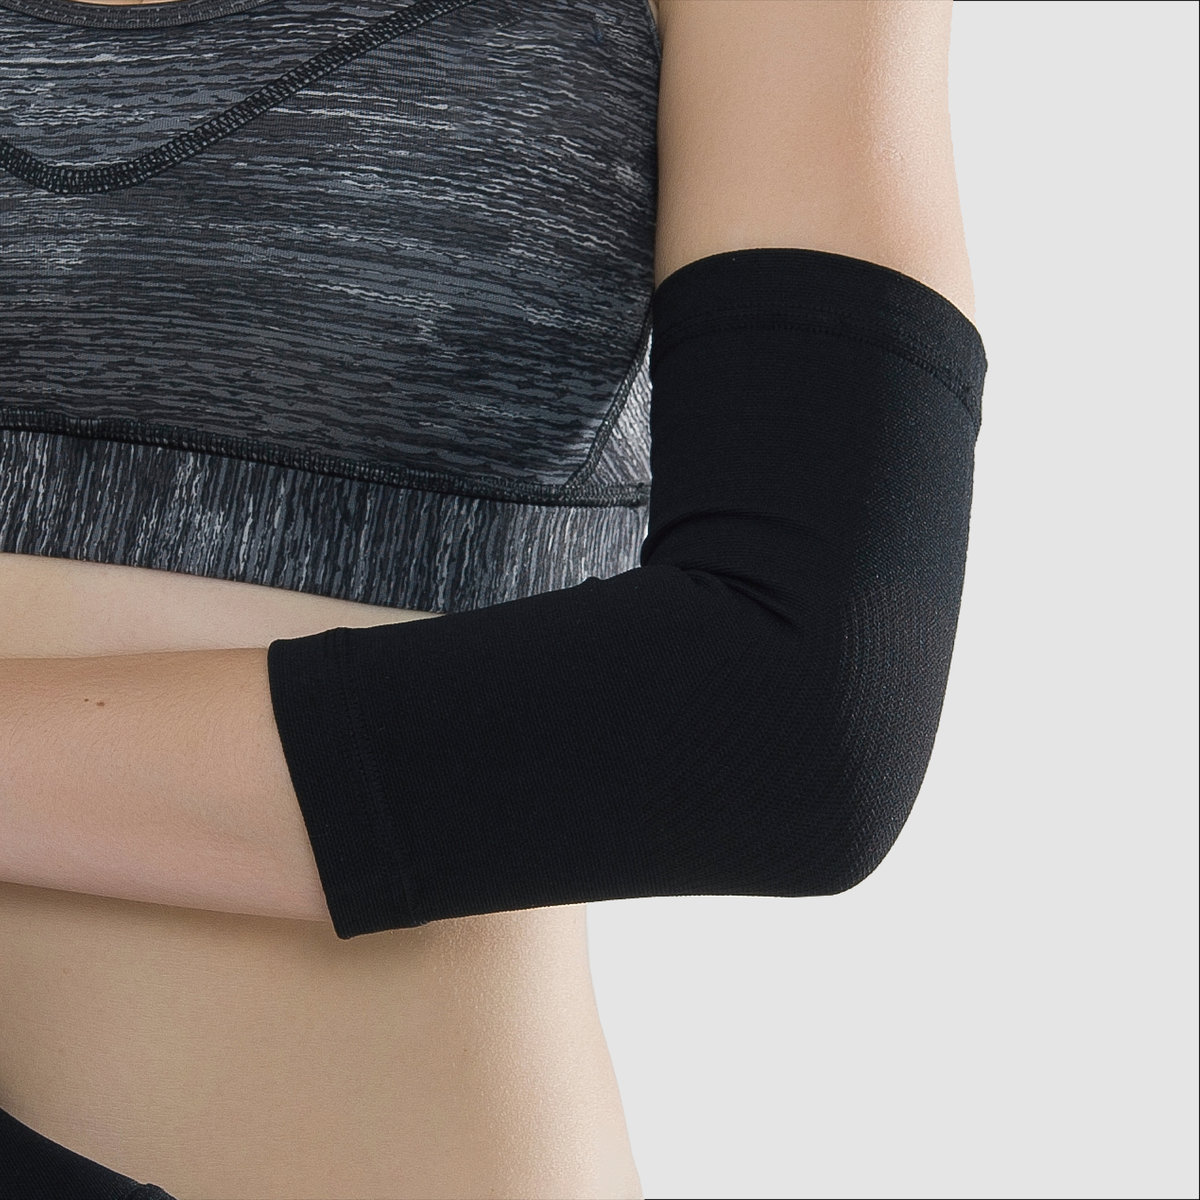 Compression Elbow Sleeves (1 Pair) [Unisex]